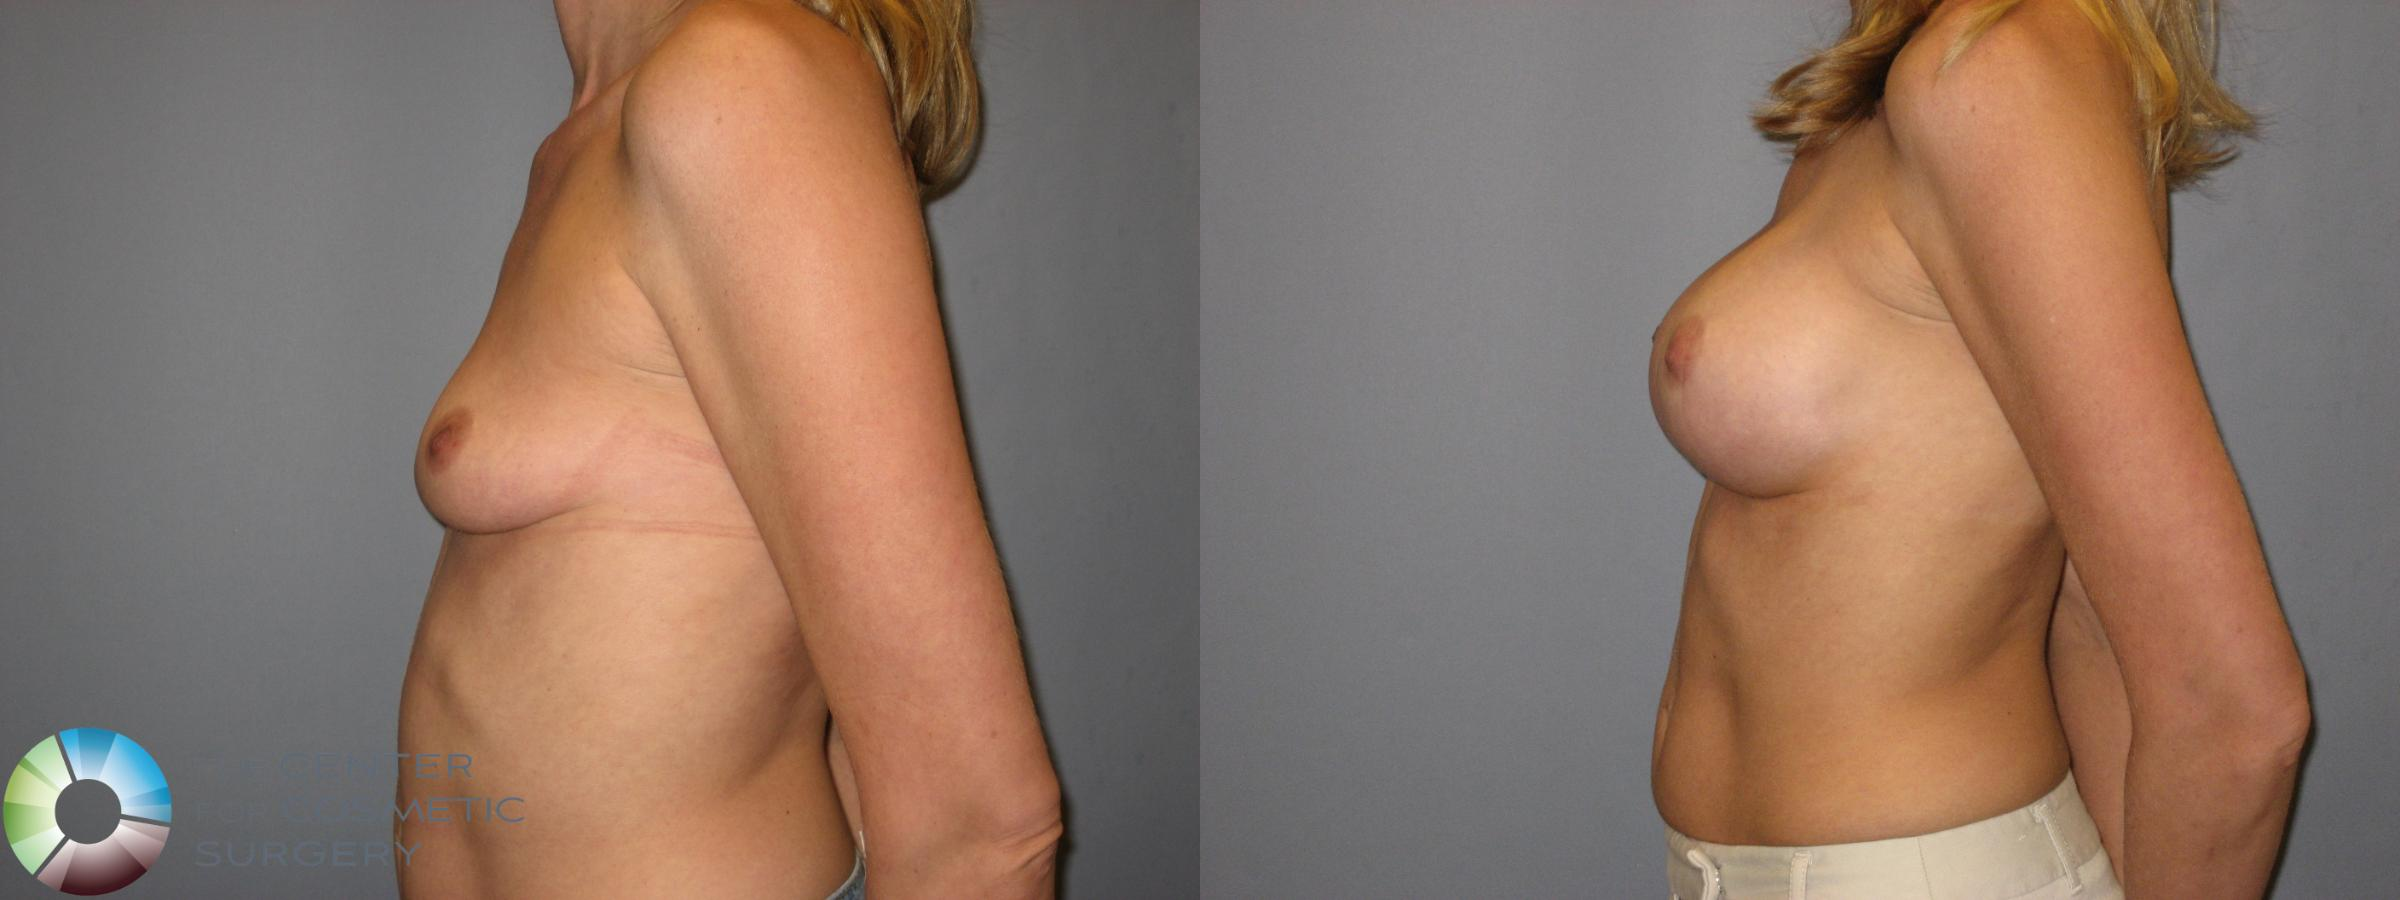 Breast Augmentation Case 223 Before & After View #3 | Golden, CO | The Center for Cosmetic Surgery